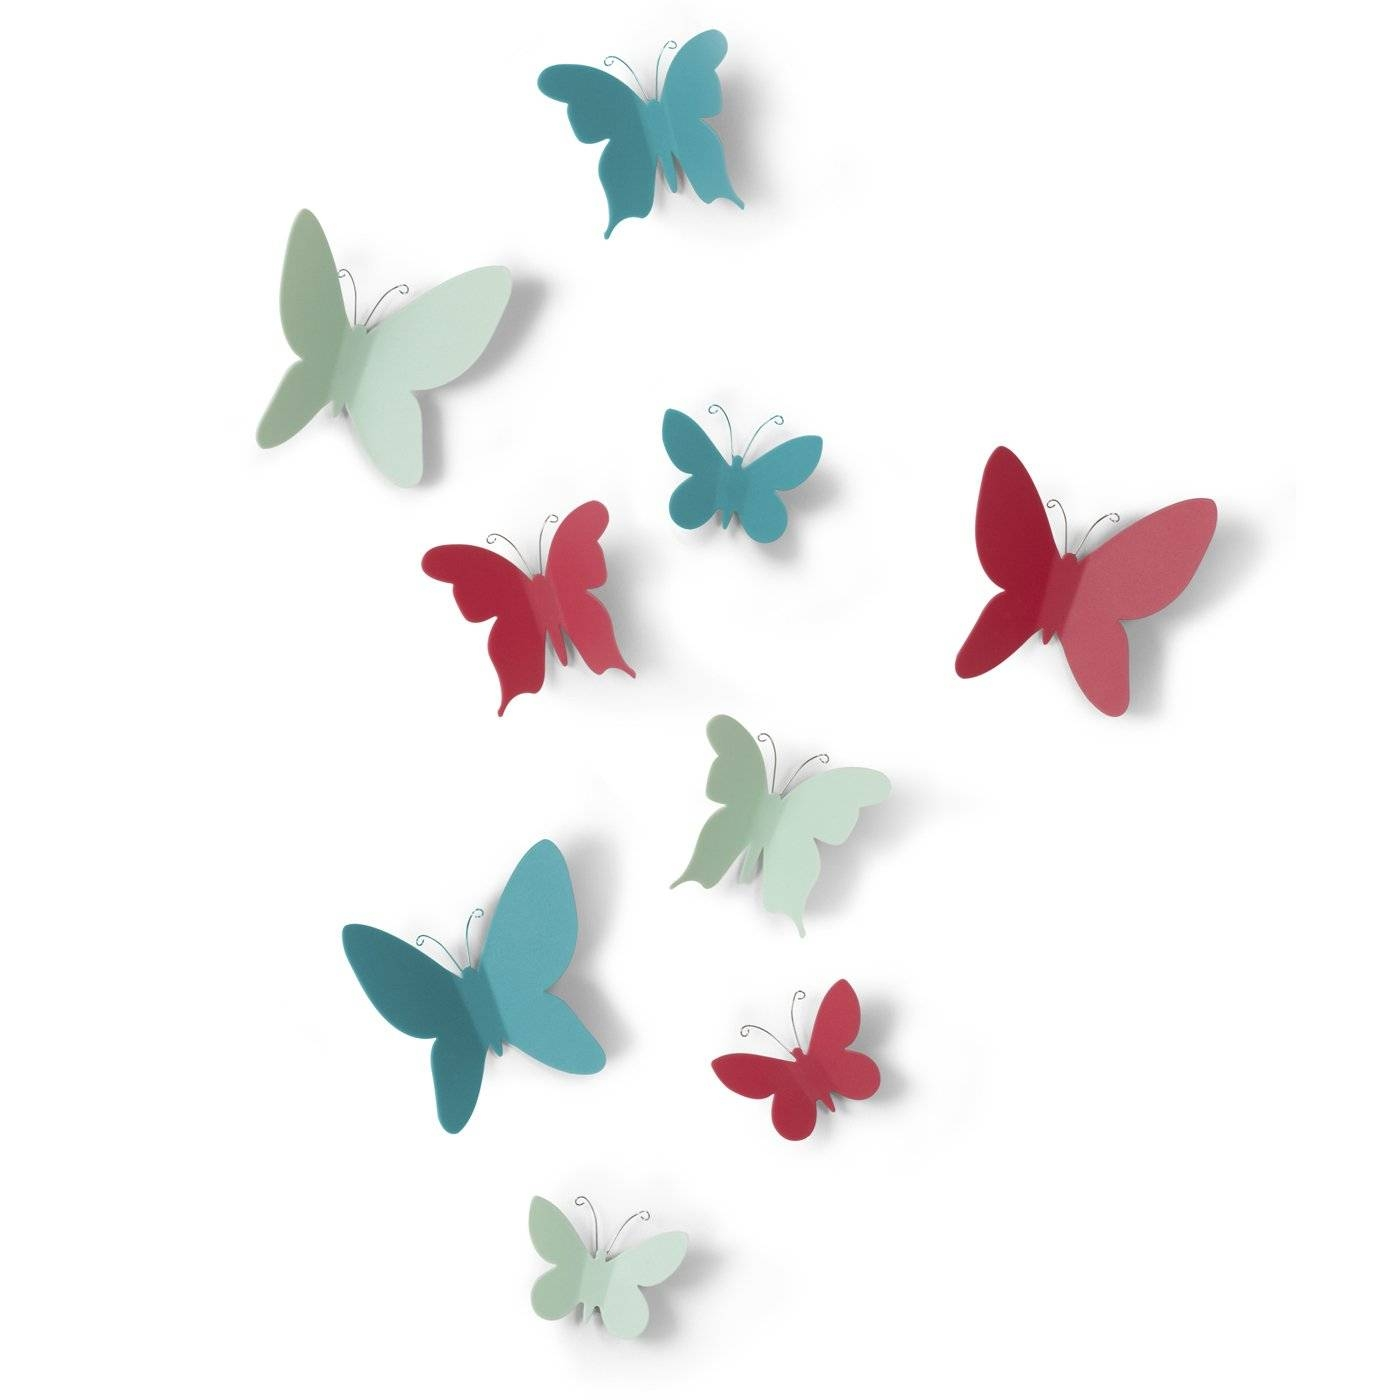 Umbra 470130 Mariposa Wall Decor (set Of 9) | Lowe's Canada Pertaining To Recent Umbra 3d Wall Art (View 15 of 20)